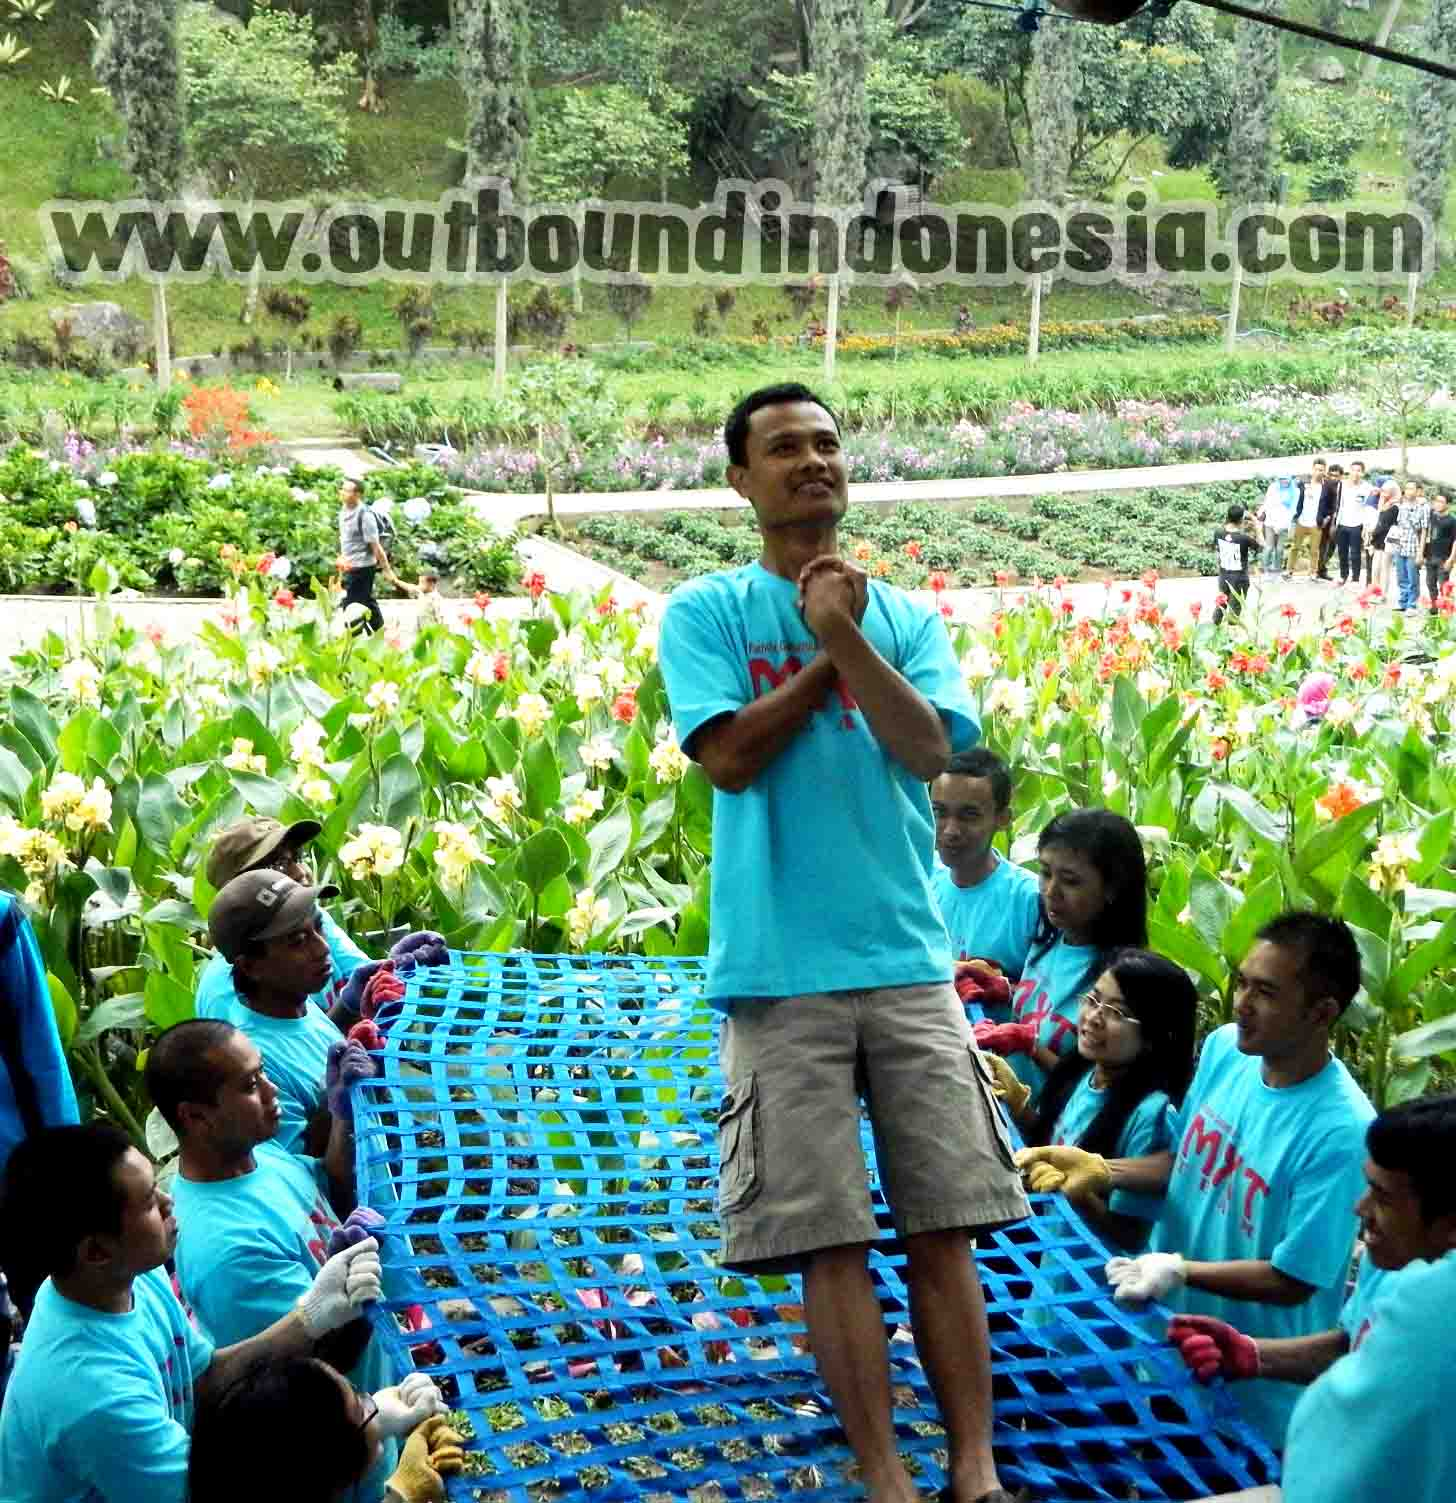 outbound di batu malang, www.outboundindonesia.com, 0341 5425754